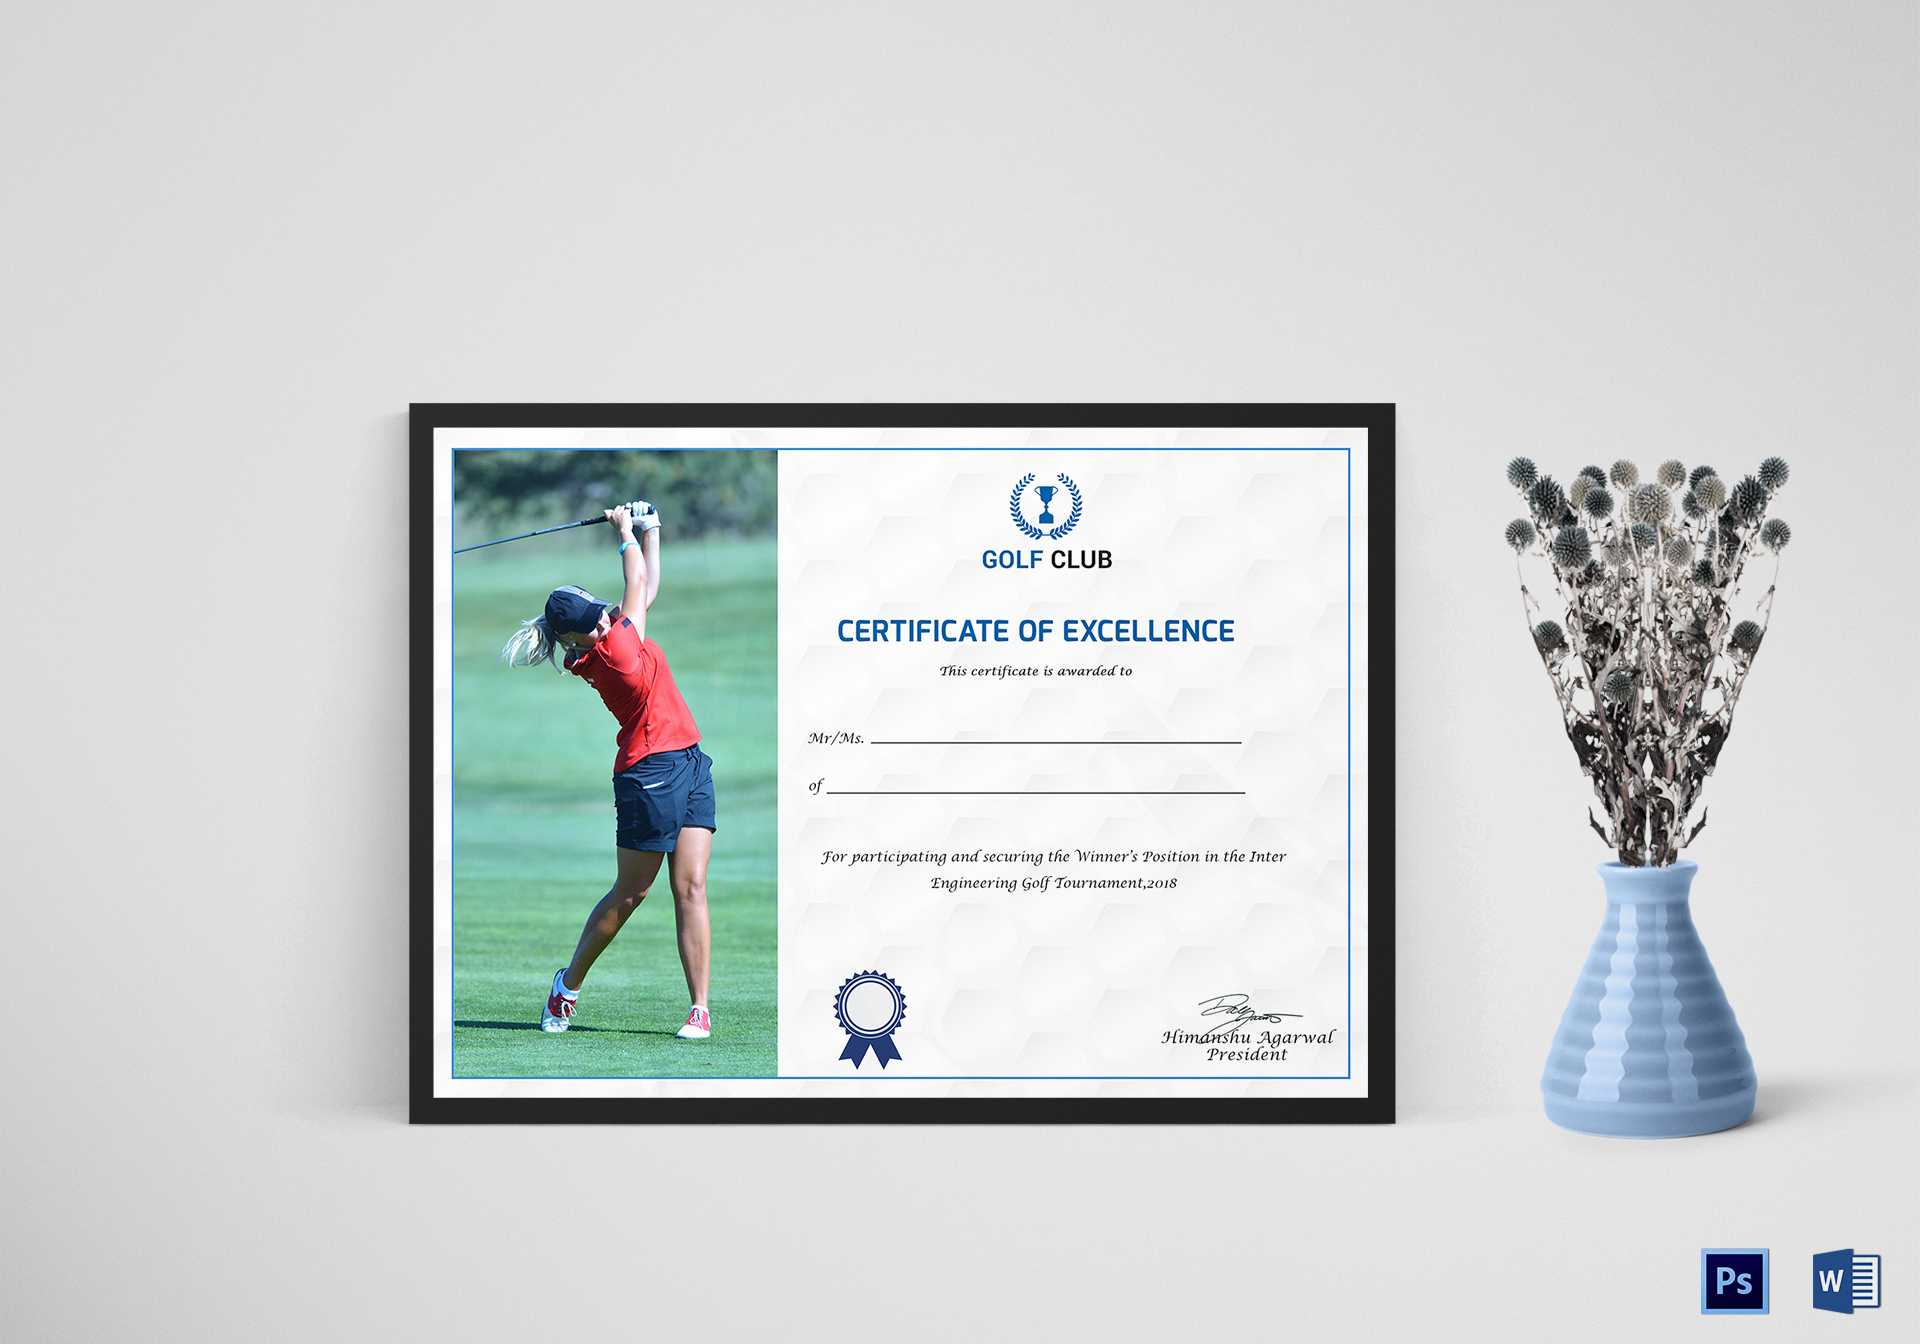 Golf Excellence Certificate Template Intended For Golf Certificate Templates For Word